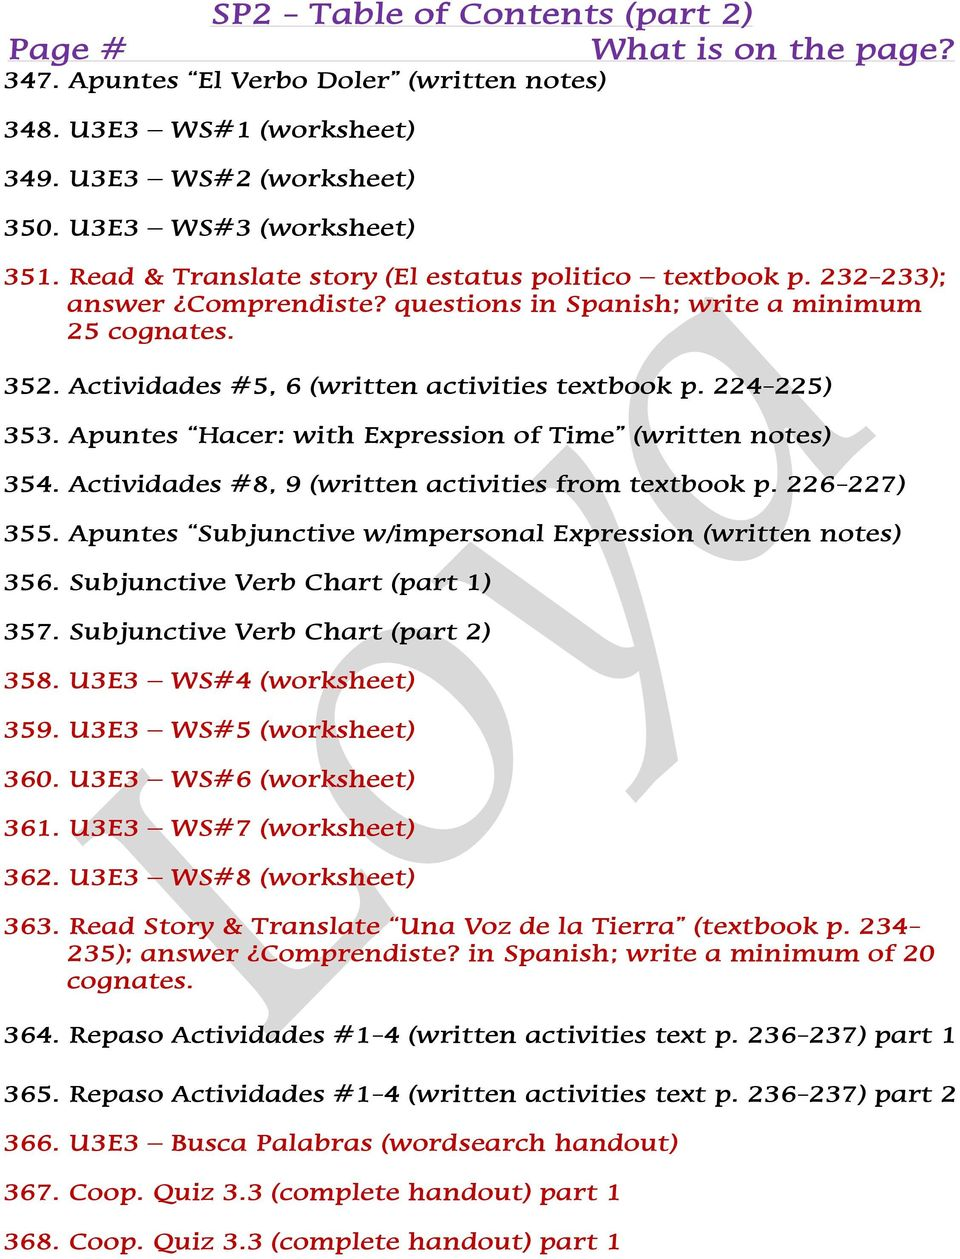 sp2 table of contents part 2 what is on the page 205 cover